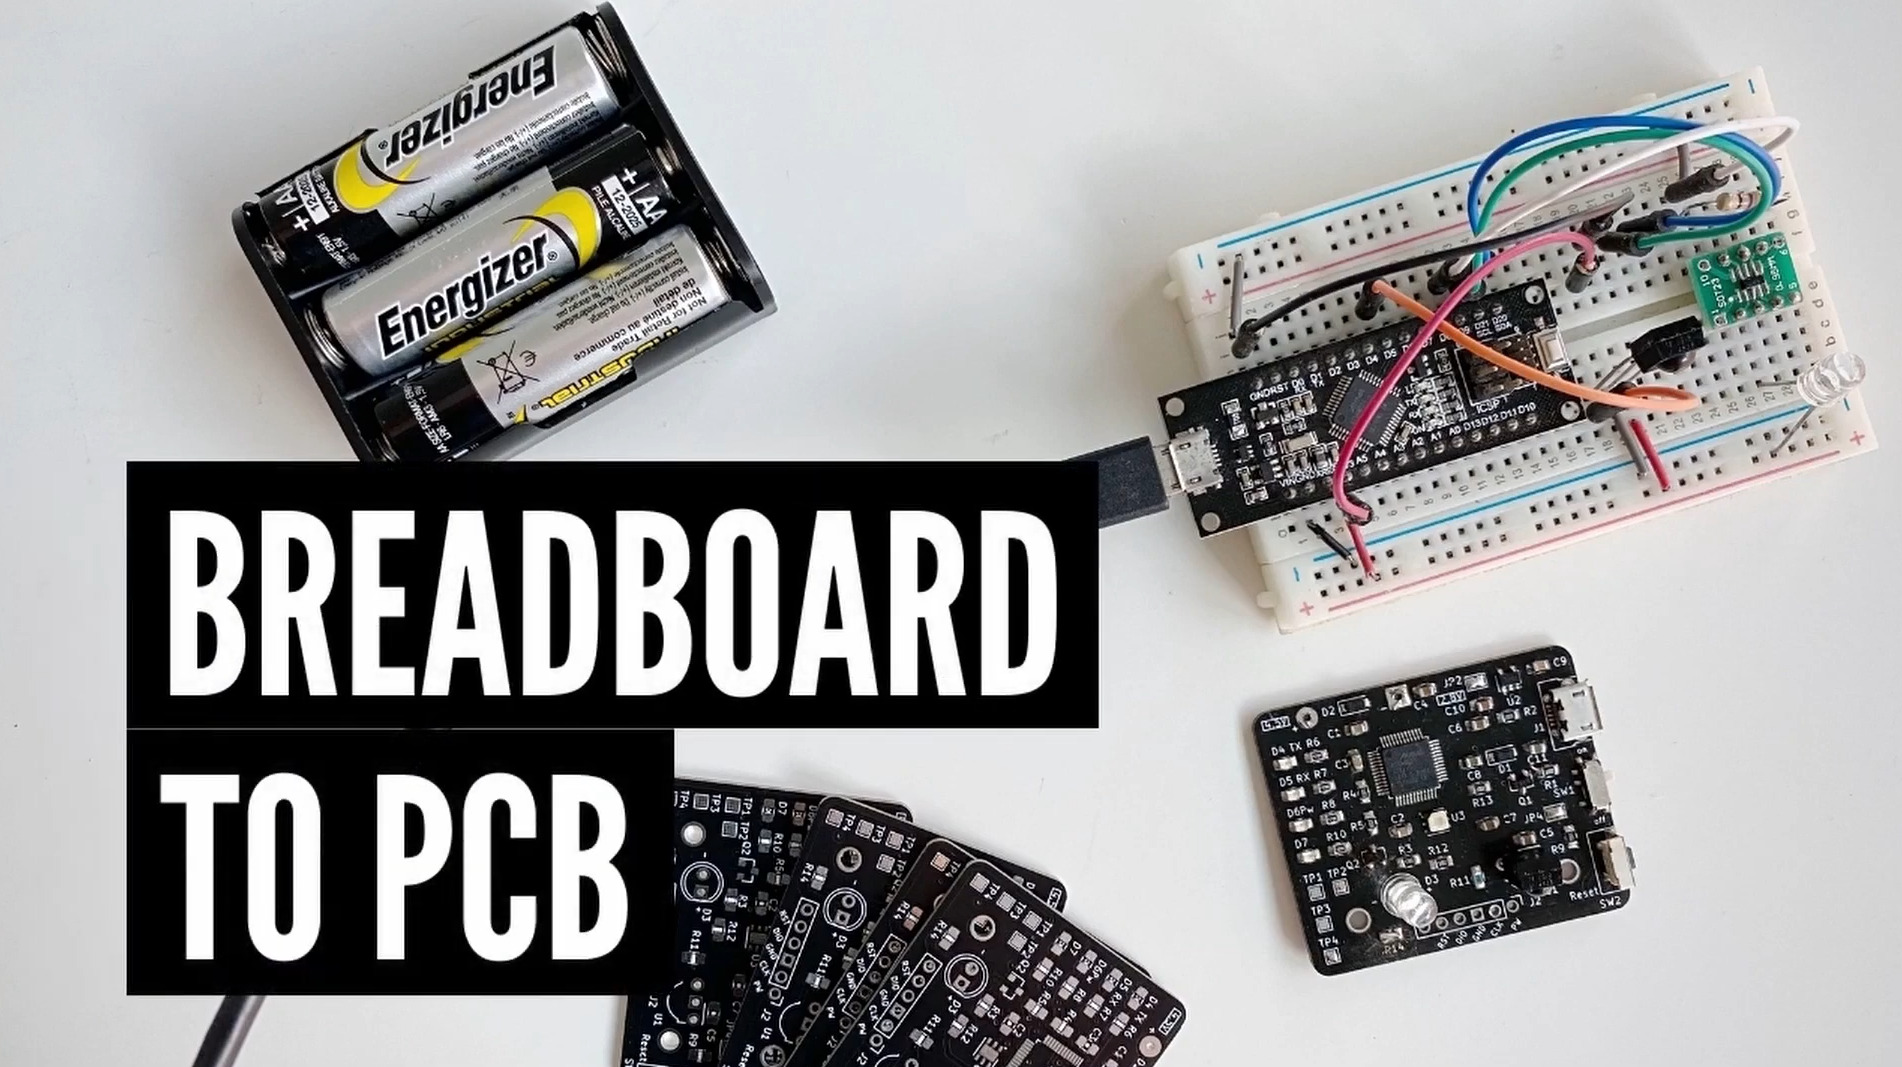 Design considerations for transferring a breadboard prototype to custom PCB